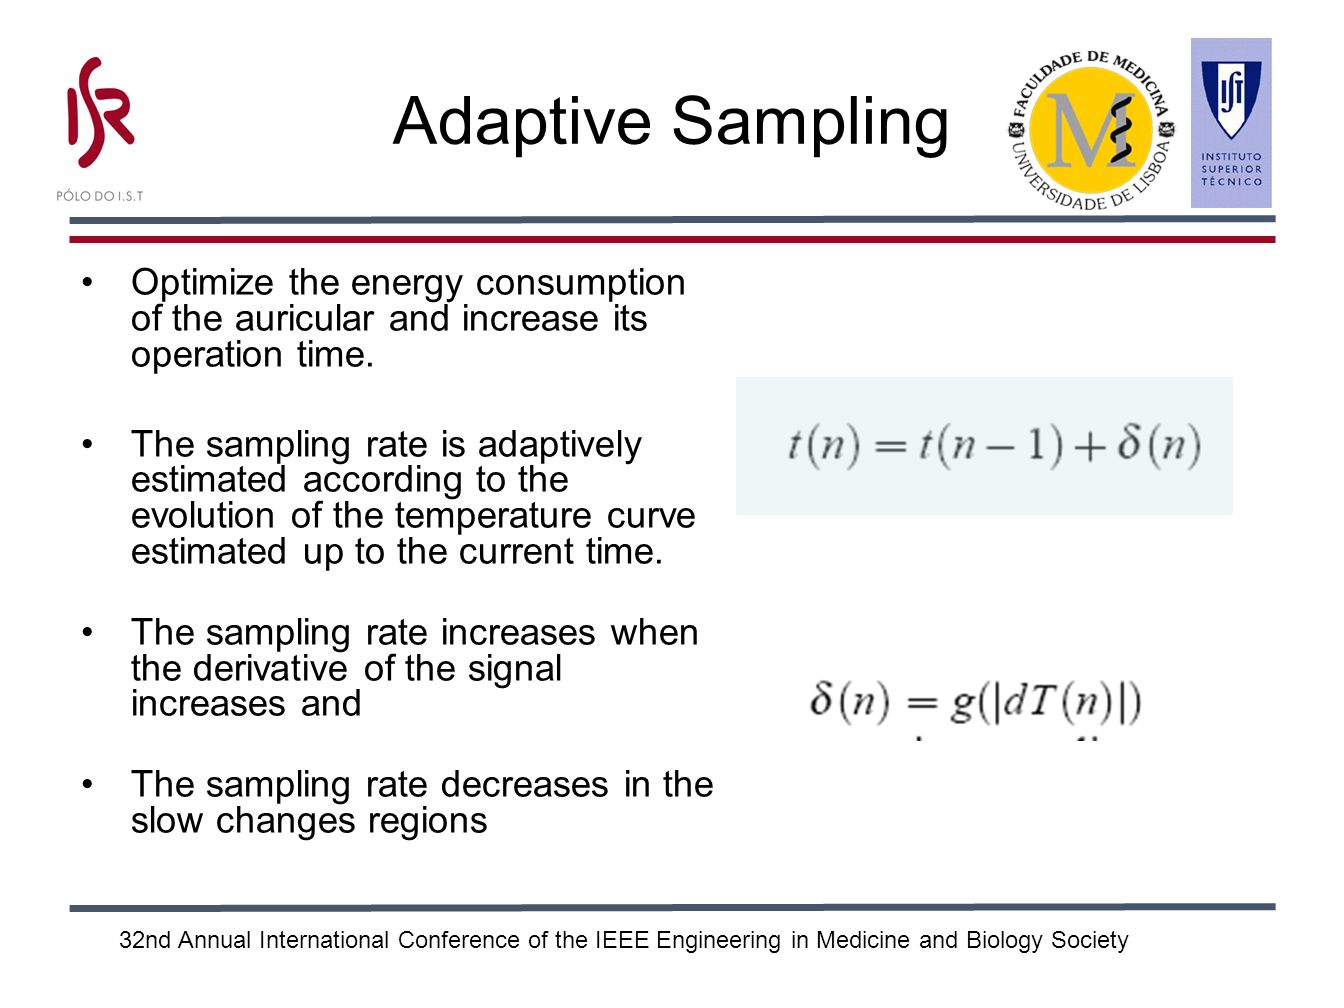 32nd Annual International Conference of the IEEE Engineering in Medicine and Biology Society Adaptive Sampling Optimize the energy consumption of the auricular and increase its operation time.